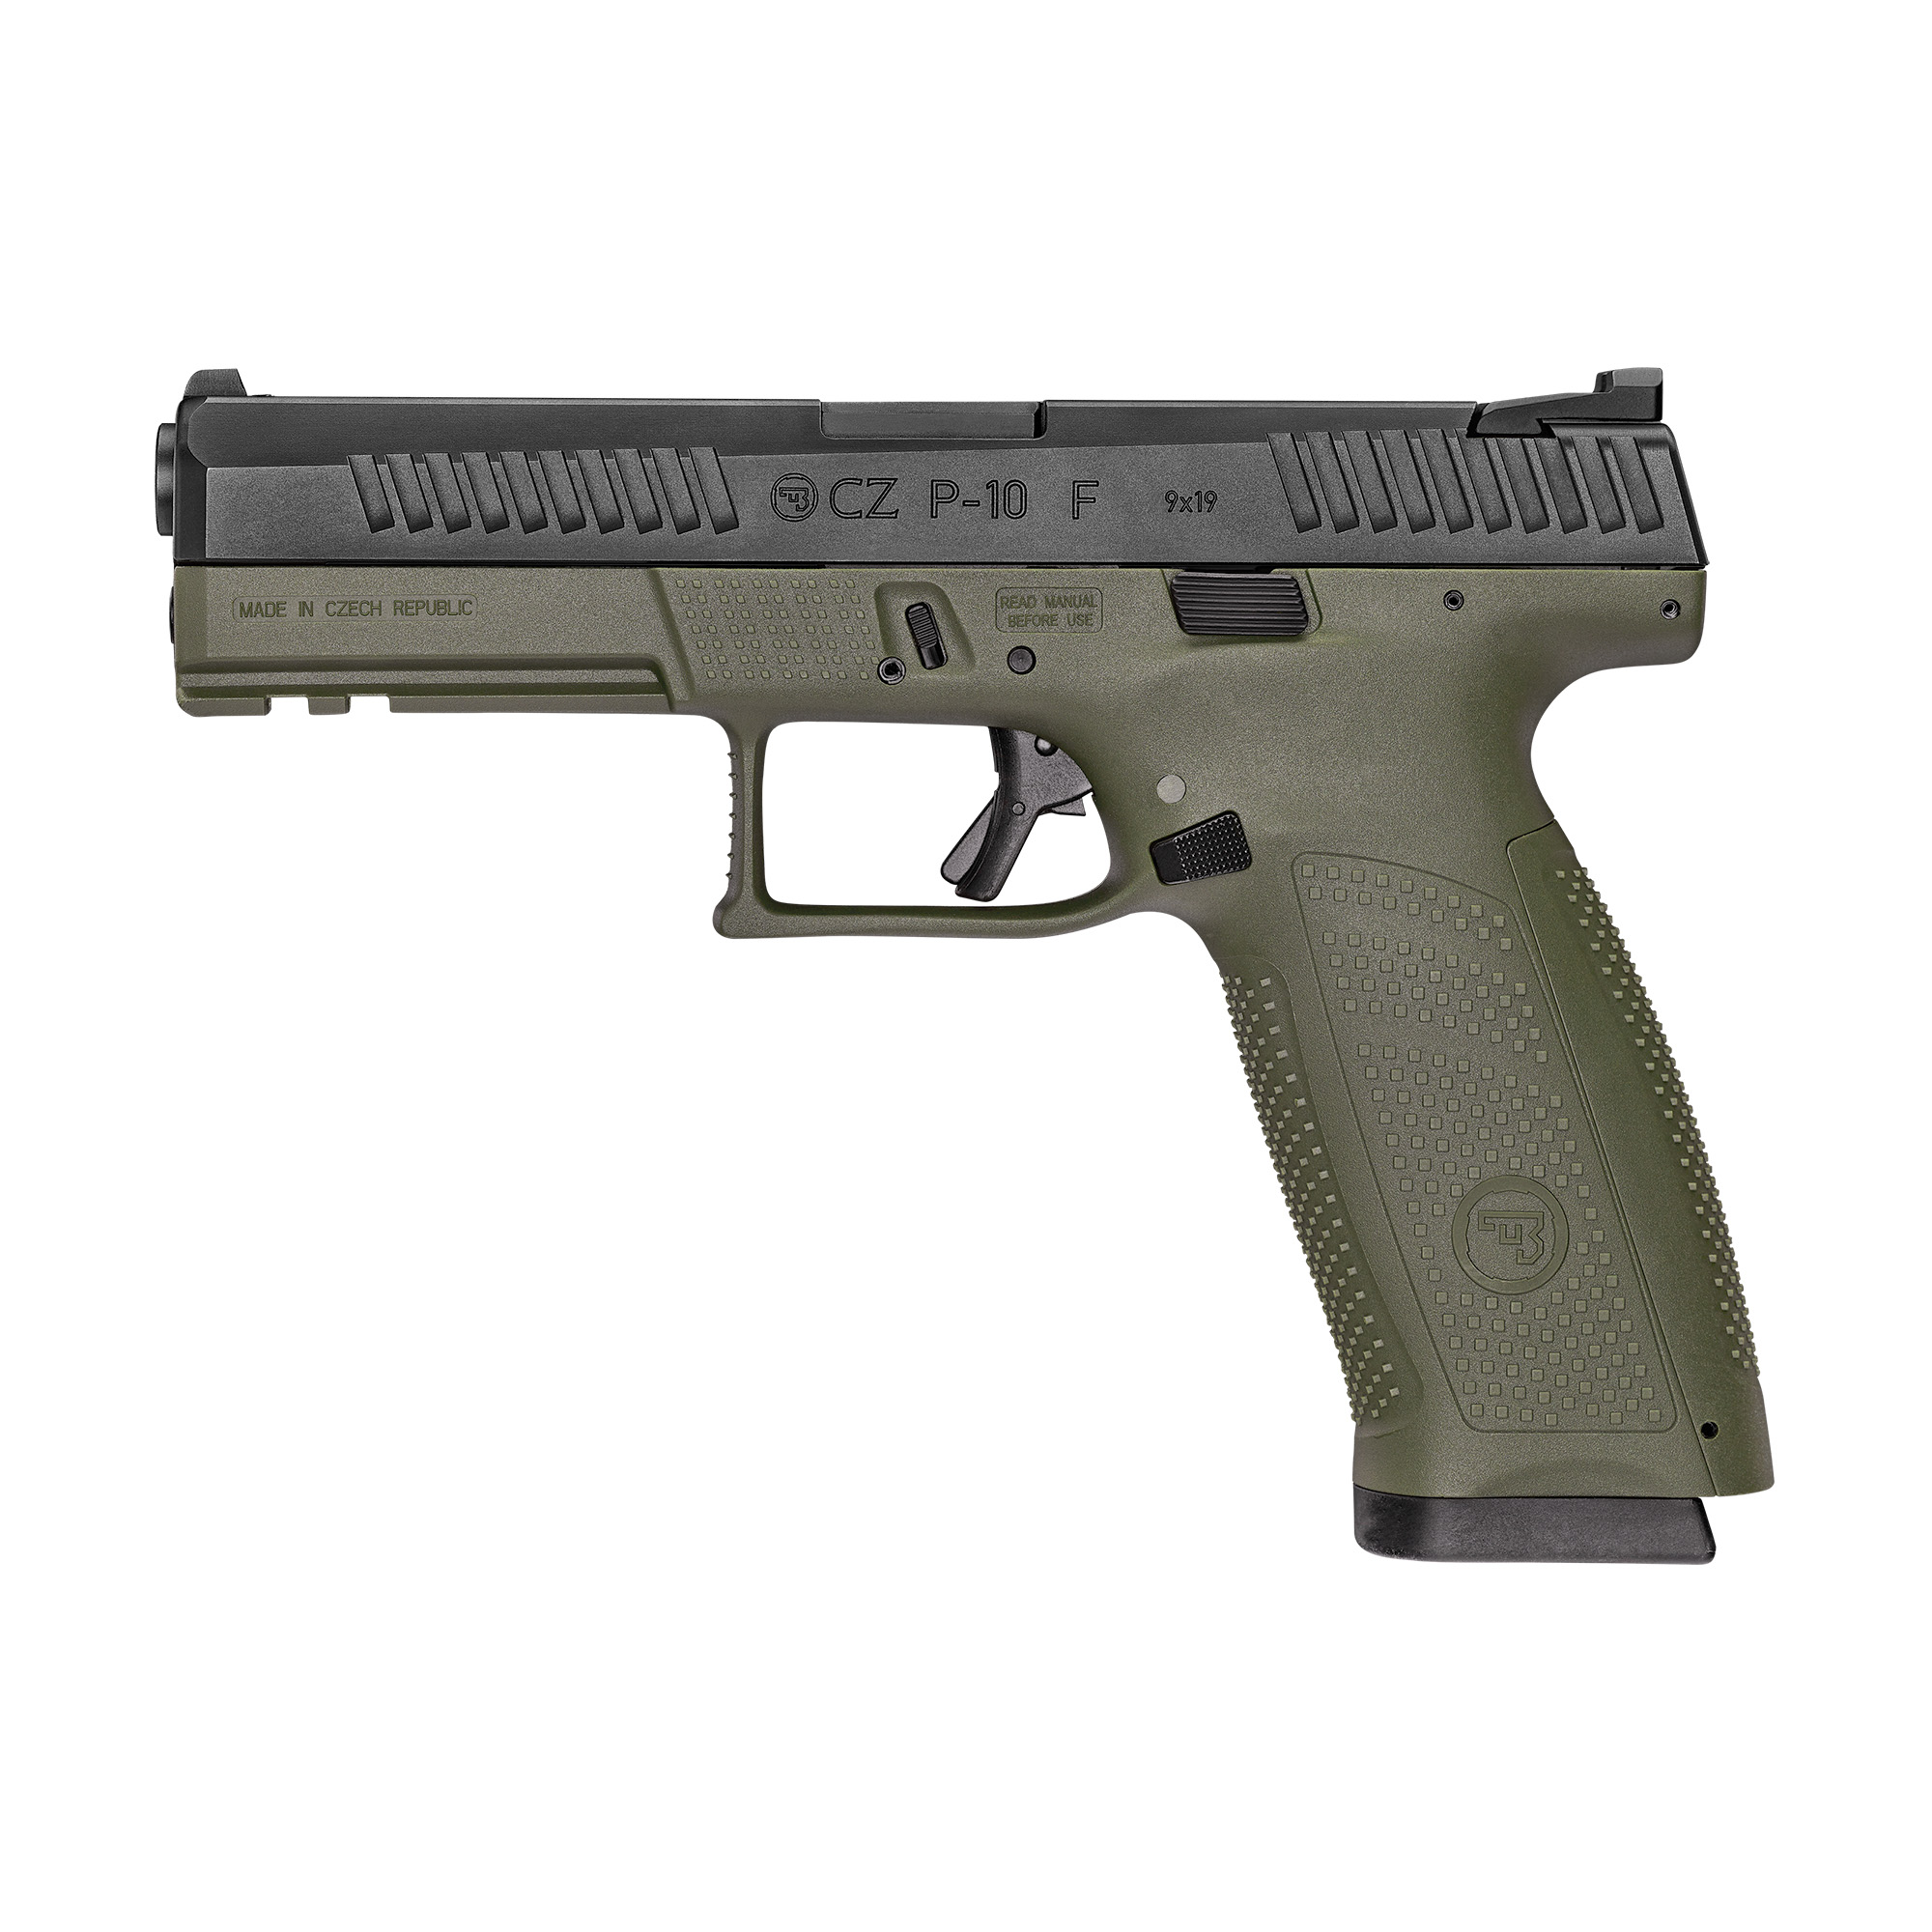 """With CZ reliability"""" engineered ergonomics and a bevy of features both familiar and new"""" the P-10F is the complete package. The CZ grip angle"""" helps the P-10F avoids that 'brick-in-the-hand' feeling that has plagued many in the striker-fired genre"""" allowing it to point naturally. A mild palm swell"""" deep beavertail and three interchangeable backstraps make the P-10F fit a wide variety of hands. The P-10F's trigger is designed to minimize creep and stacking"""" and after initial break-in averages a clean 4.5-5 lb. pull and rebounds with a short"""" positive reset - meaning single shots can be meticulously placed while follow-ups are effortless. Built to withstand the rigors of military use"""" its fiber-reinforced polymer frame and hardy nitride finish are made for the daily grind. A generous trigger guard allows use with gloved hands while being undercut to allow as high a grip as possible"""" and a set of metal tactical sights allow for one-handed manipulation of the slide on a belt. Like all CZ pistols"""" the P-10F is built with CZ's legendary cold hammer forged barrel. This model has a 10RD capacity."""